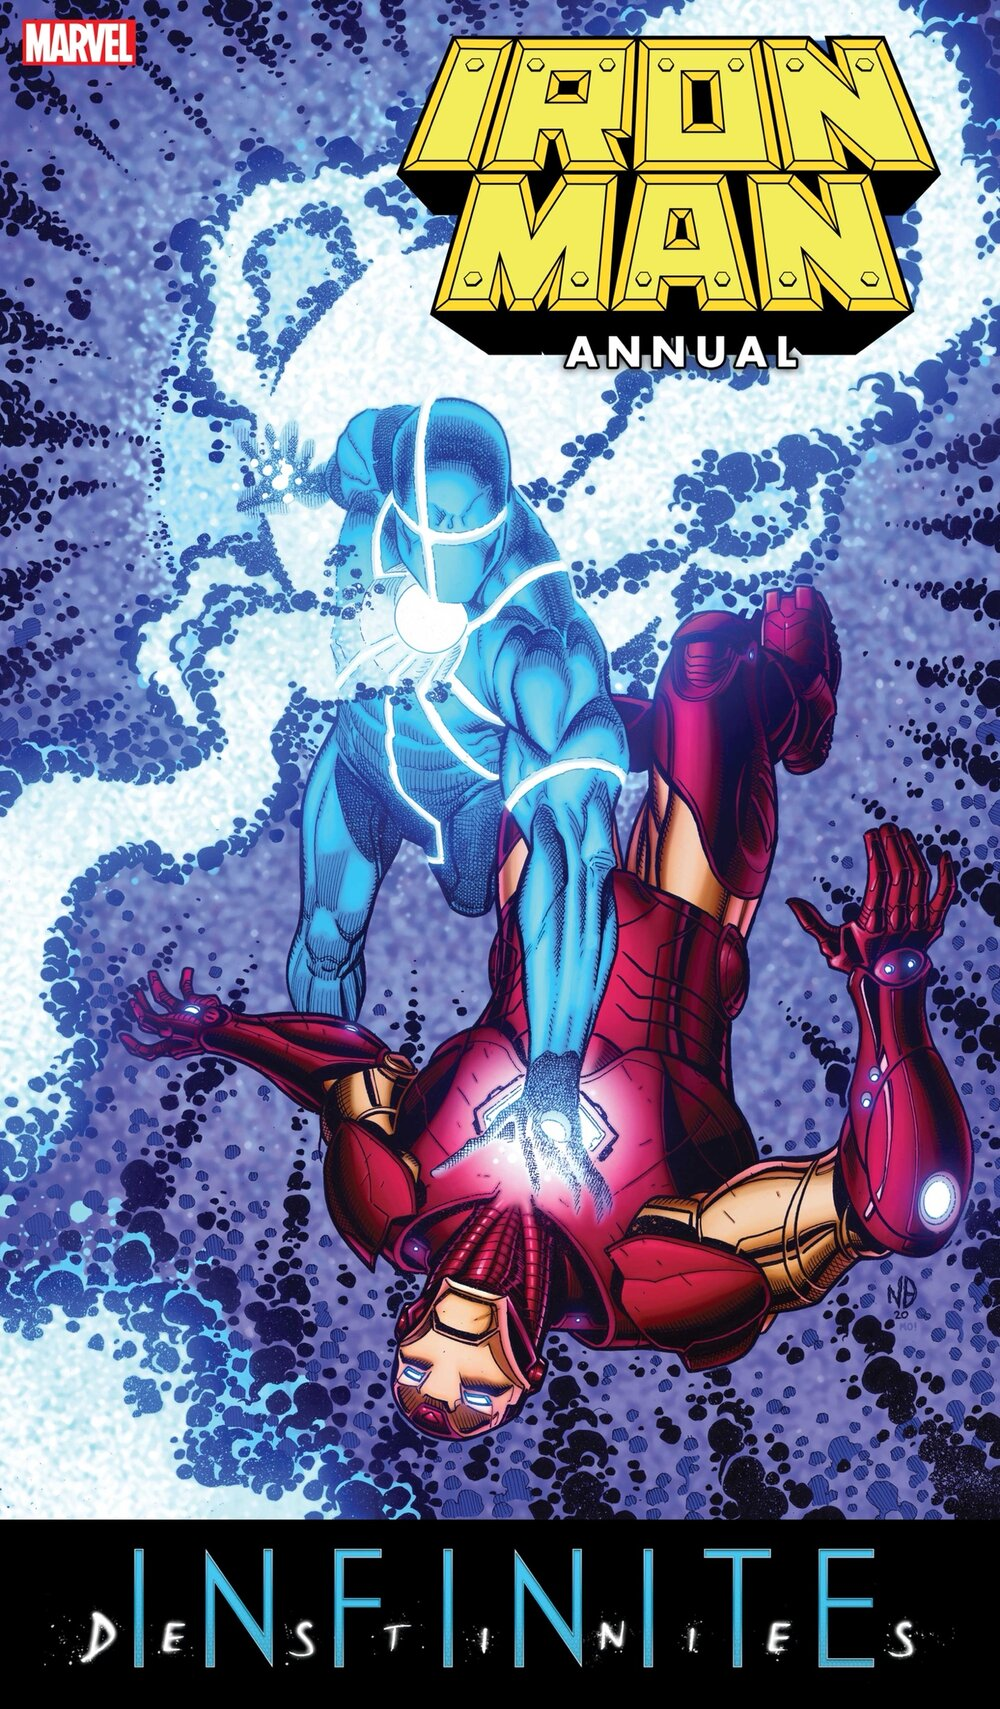 IRON MAN ANNUAL #1  Written by JED MACKAY  Art by IBRAIM ROBERSON  Cover by NICK BRADSHAW  On Sale 6/2